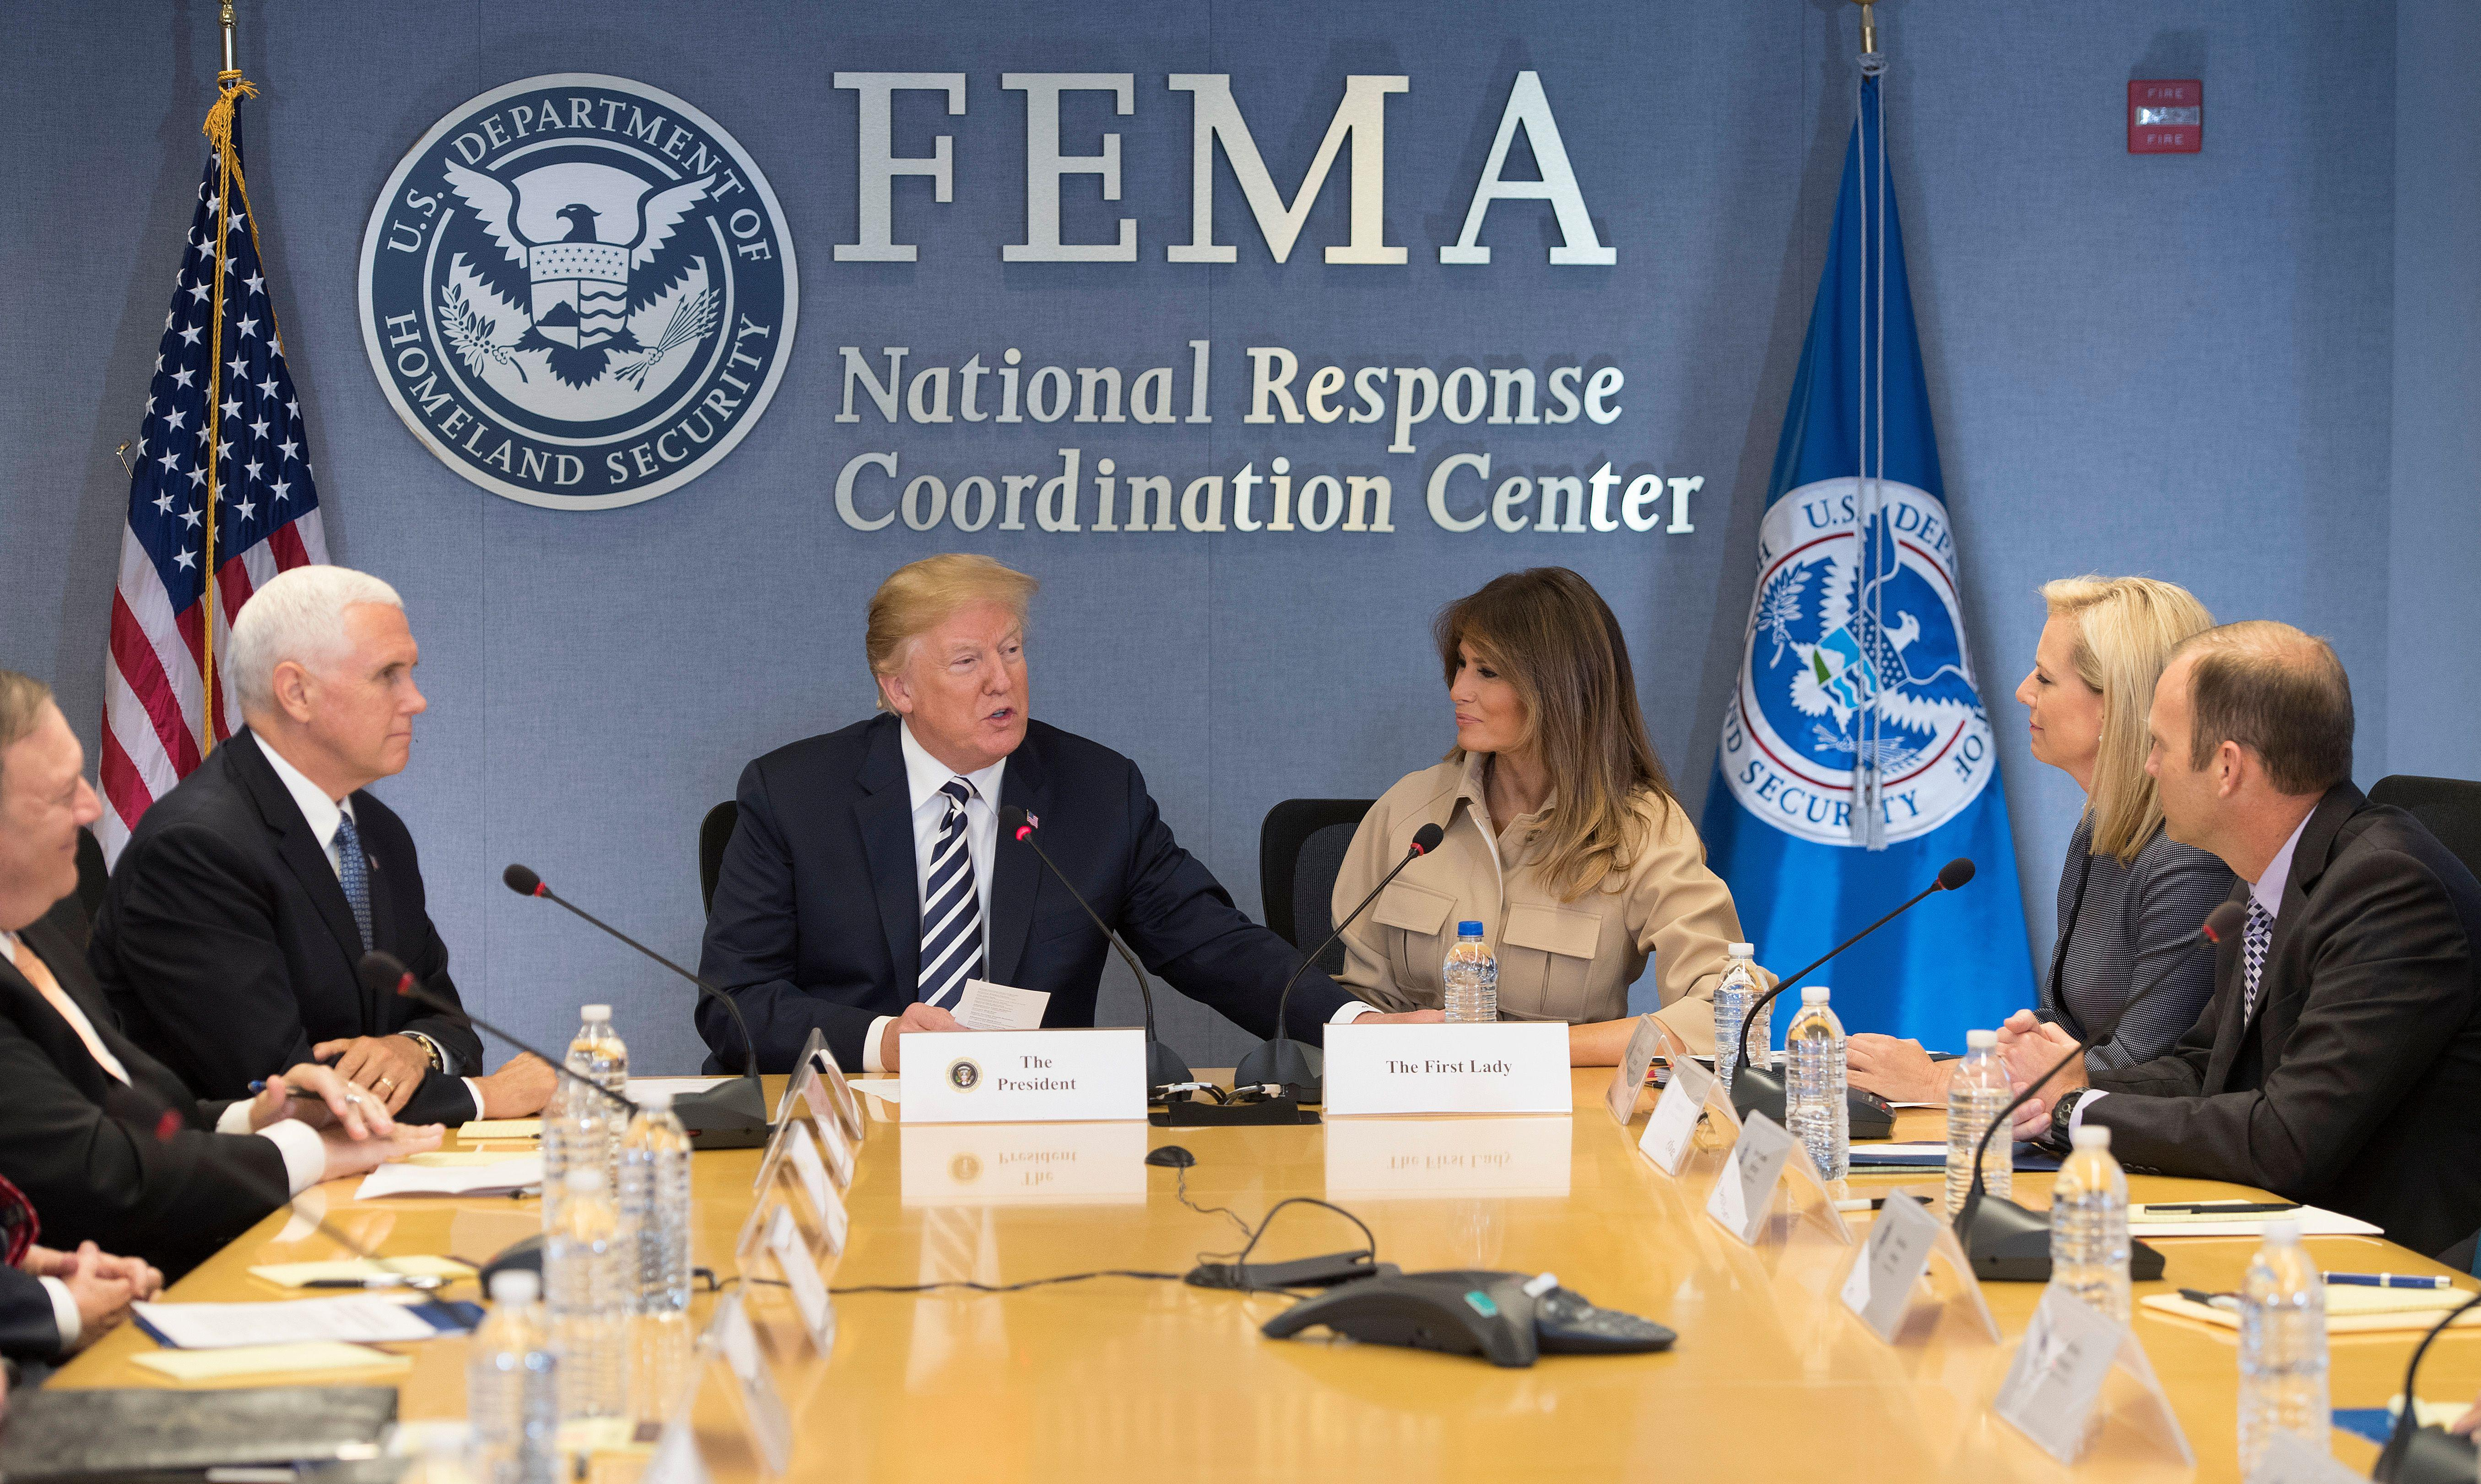 President Donald Trump, Vice President Mike Pence, and First Lady Melania Trump visit the Federal Emergency Management Agency Headquarters and attend a 2018 Hurricane Briefing in Washington, D.C. on June 6, 2018.